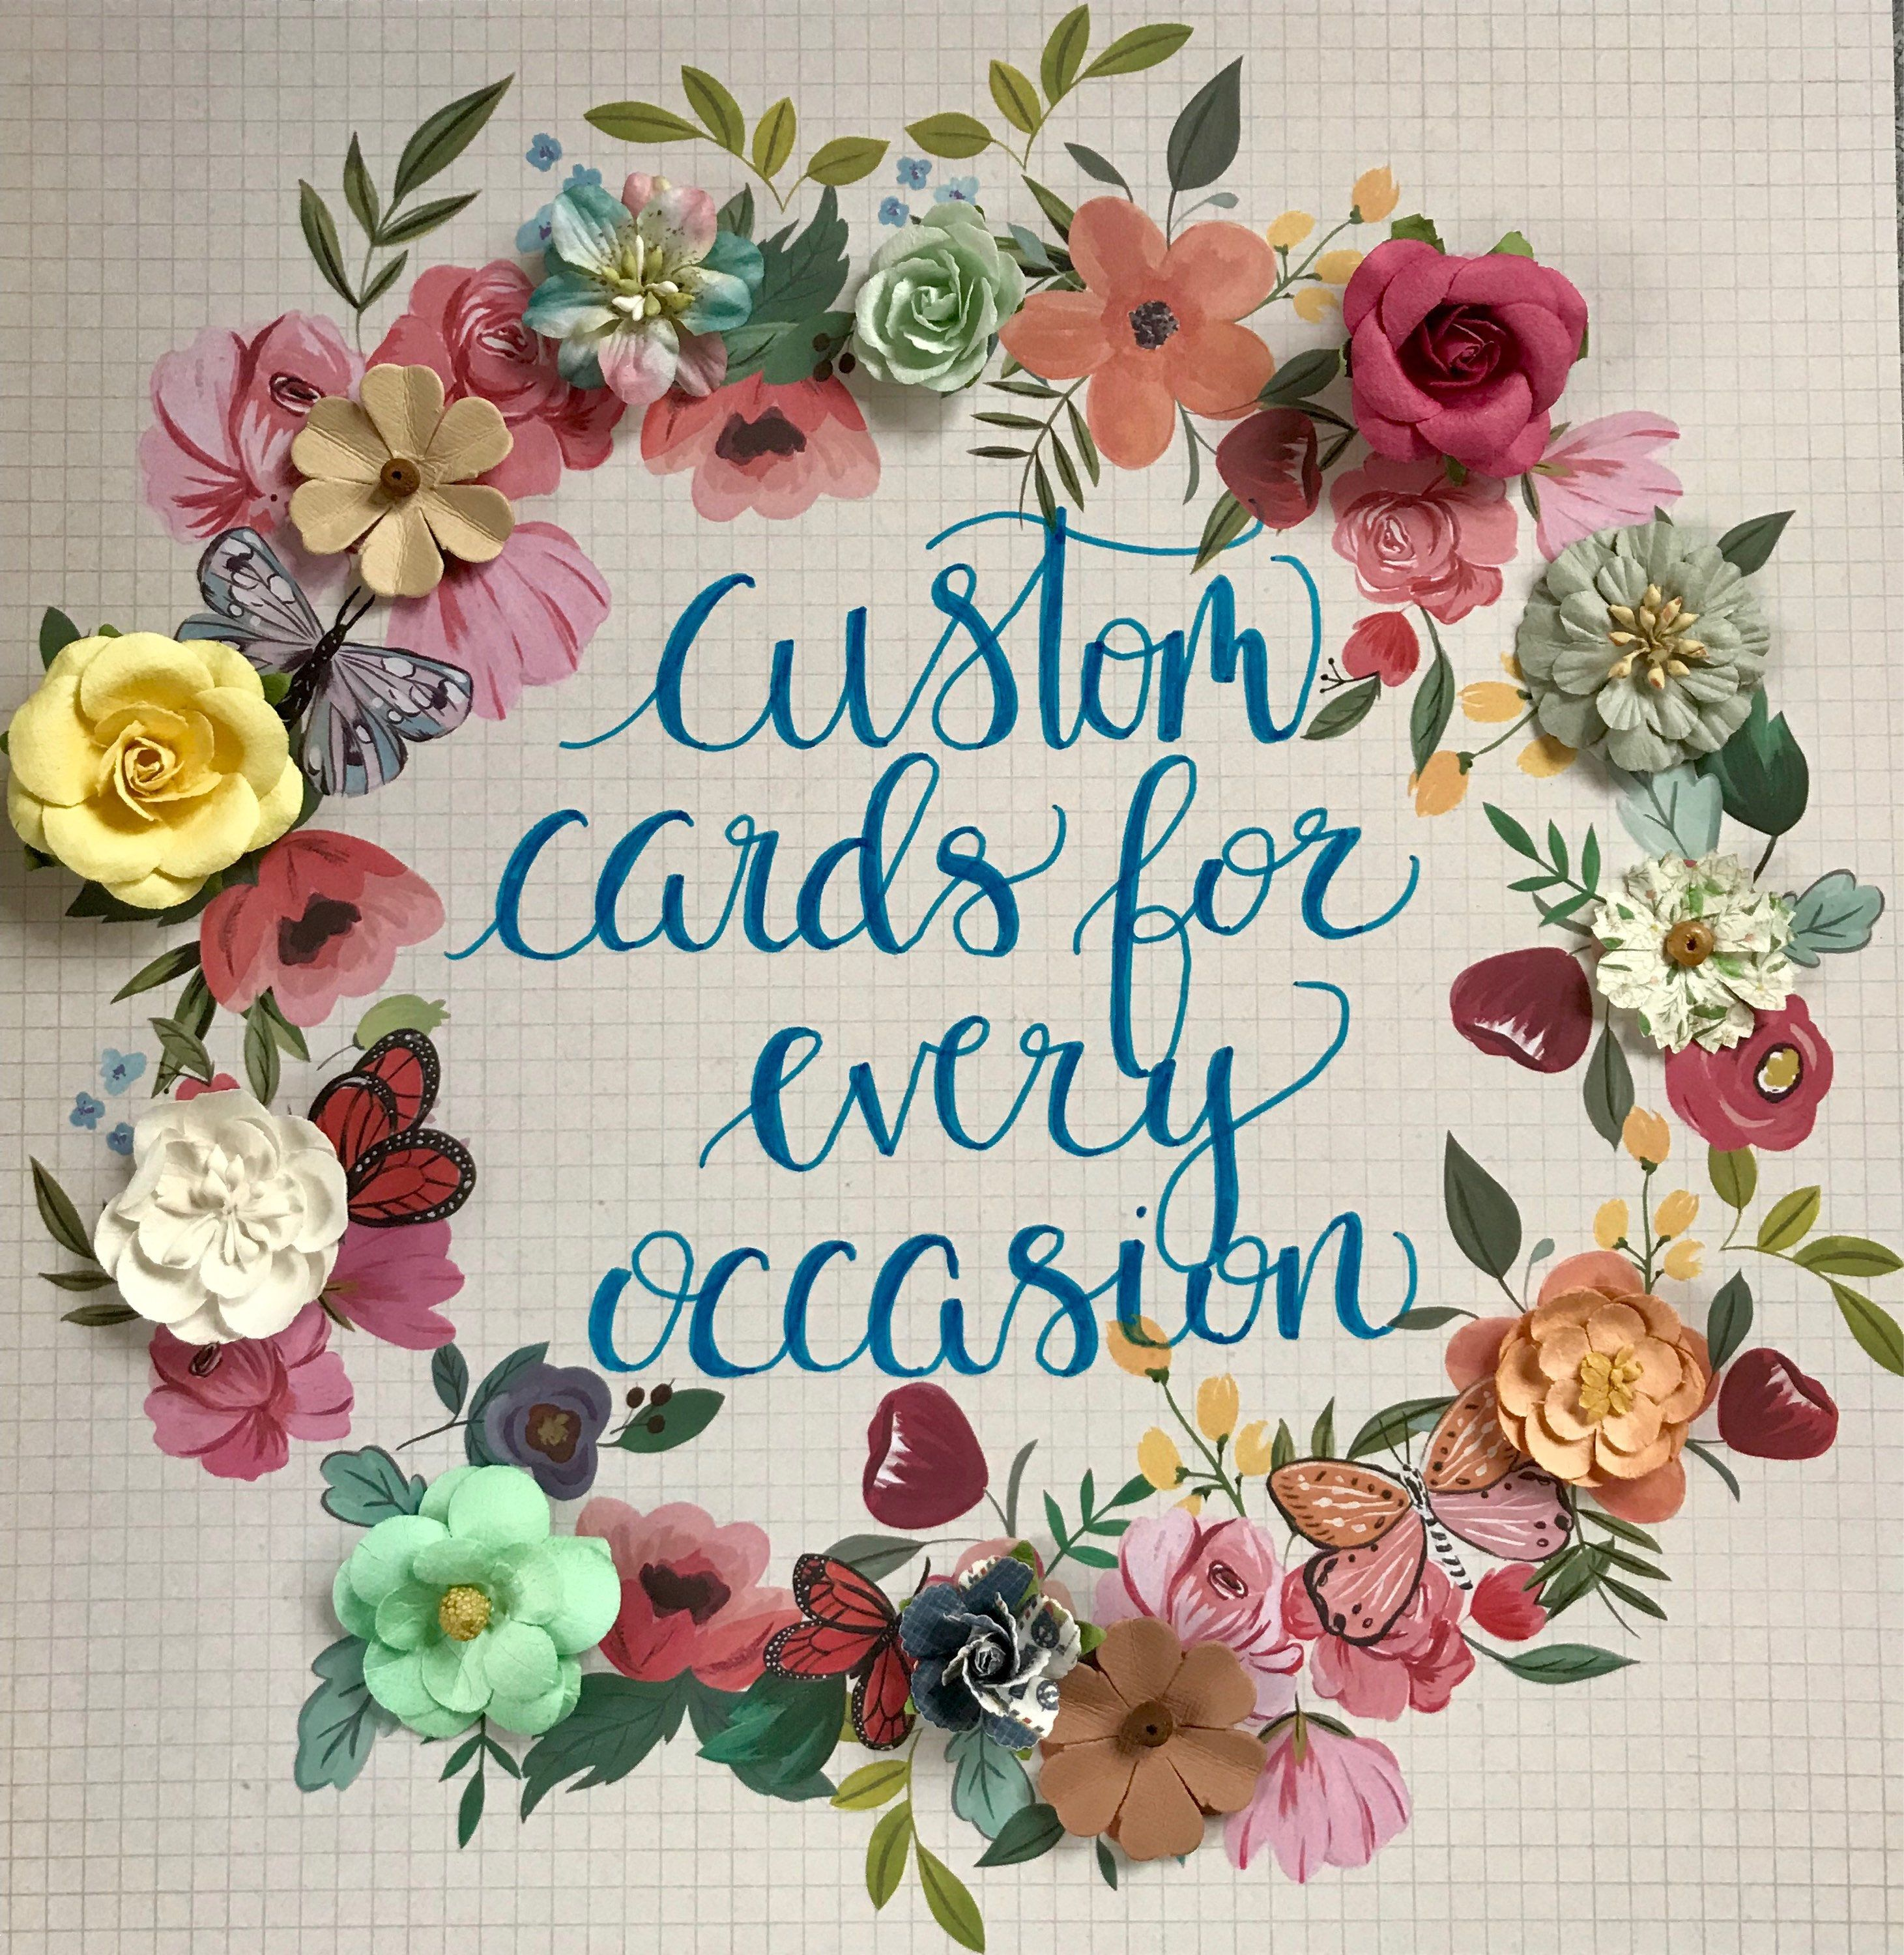 Custom Handmade Greeting Cards For Every Occasion From My Etsy Shop